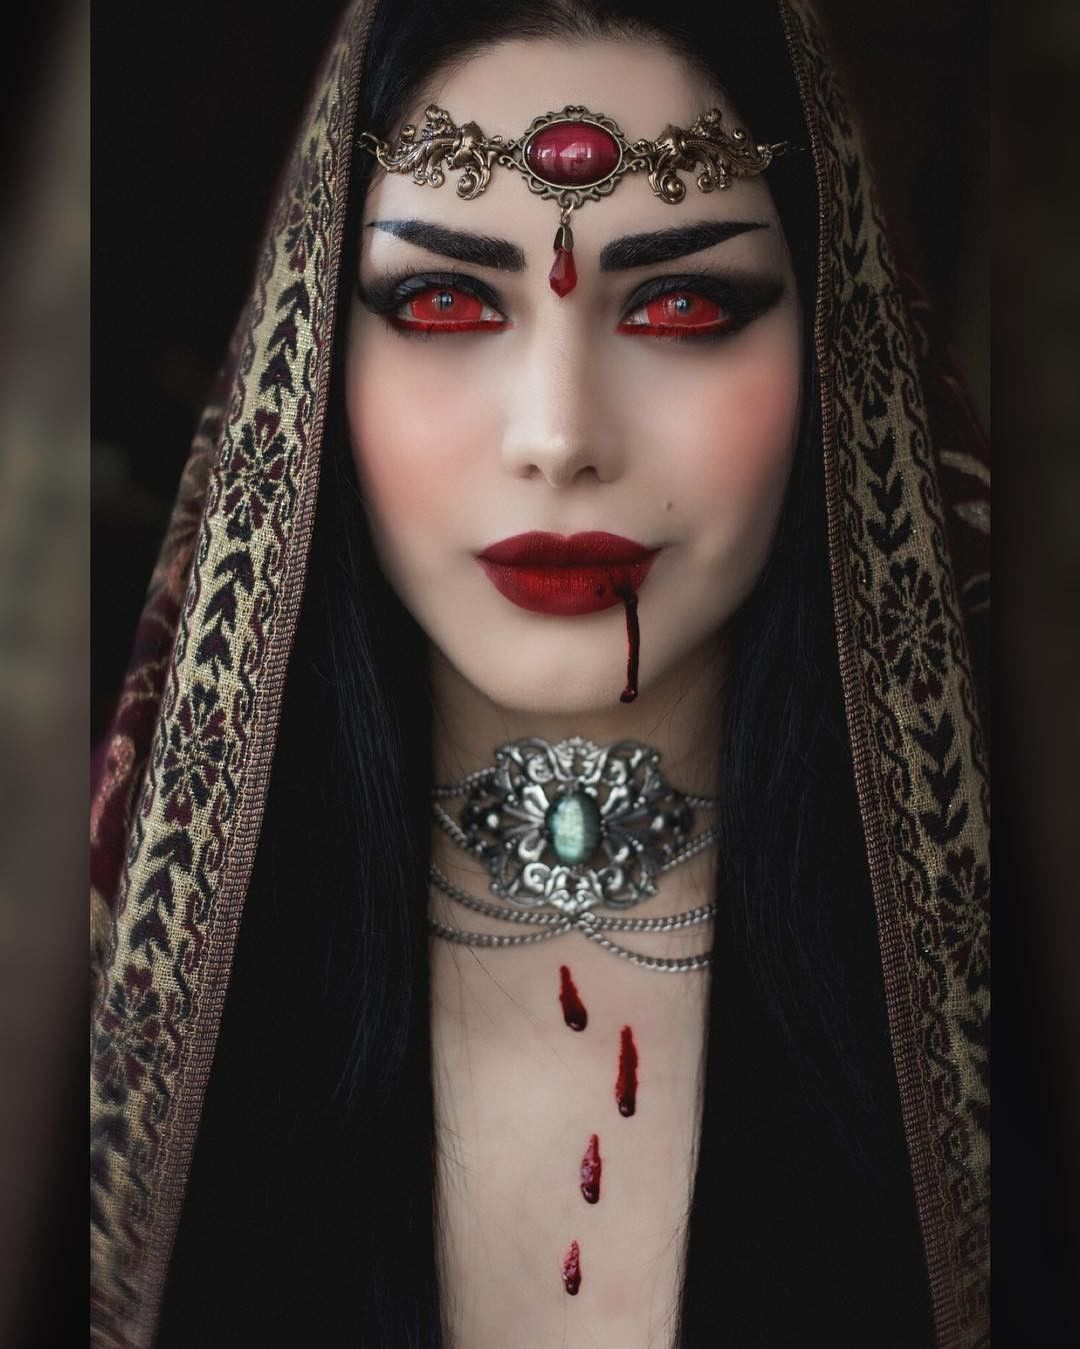 Pretty vampire queen 💖🖤💖🖤 Credit   mahafsoun  alternativemodel  artist   beautifulgirl  instagoth  gothgirl  victoriangoth  gothiclife… 4d04411a6f2